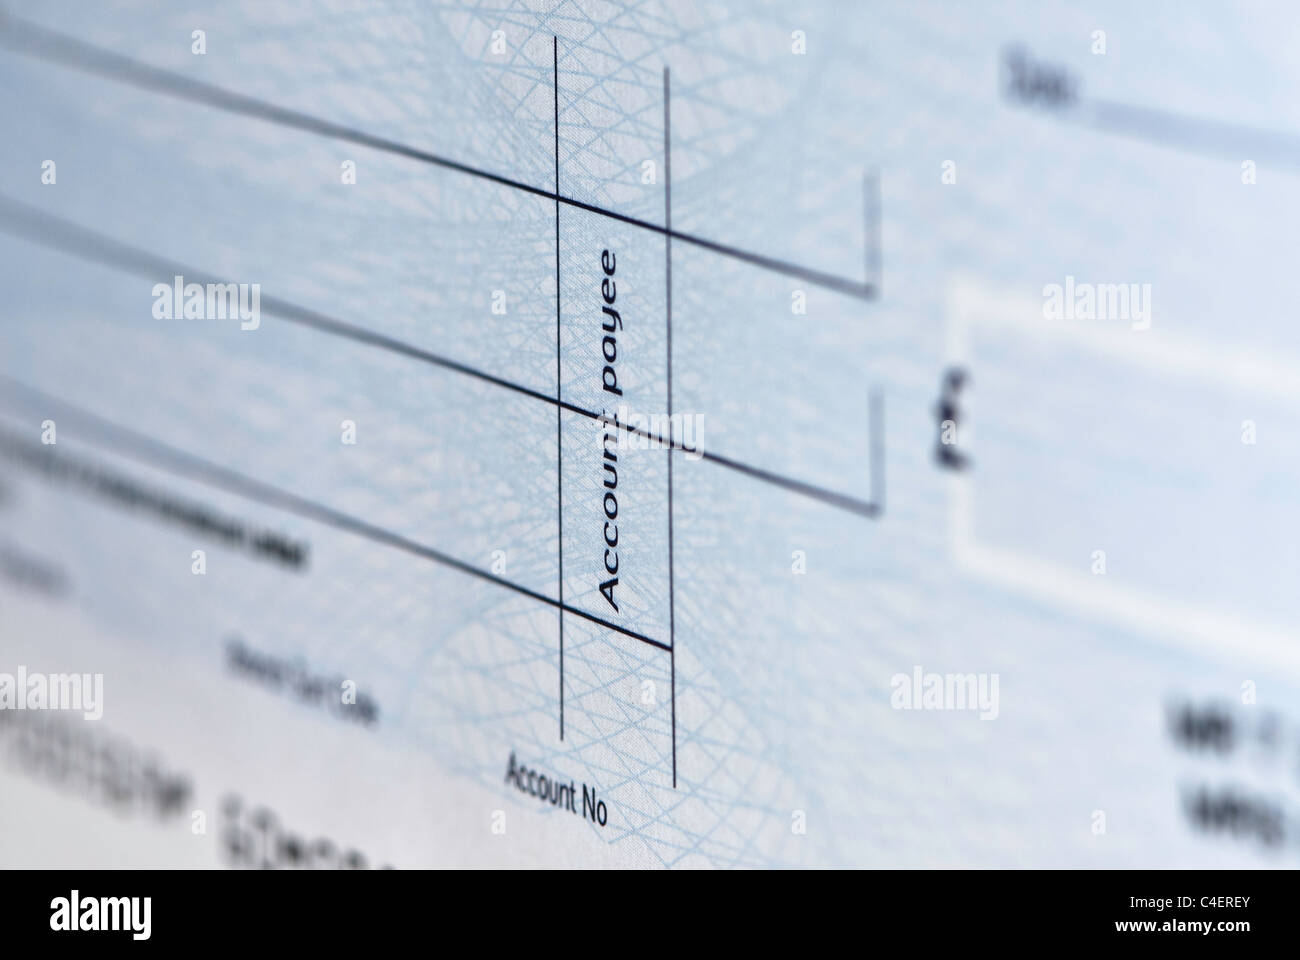 Close up of a cheque with the words 'account payee' visible. - Stock Image